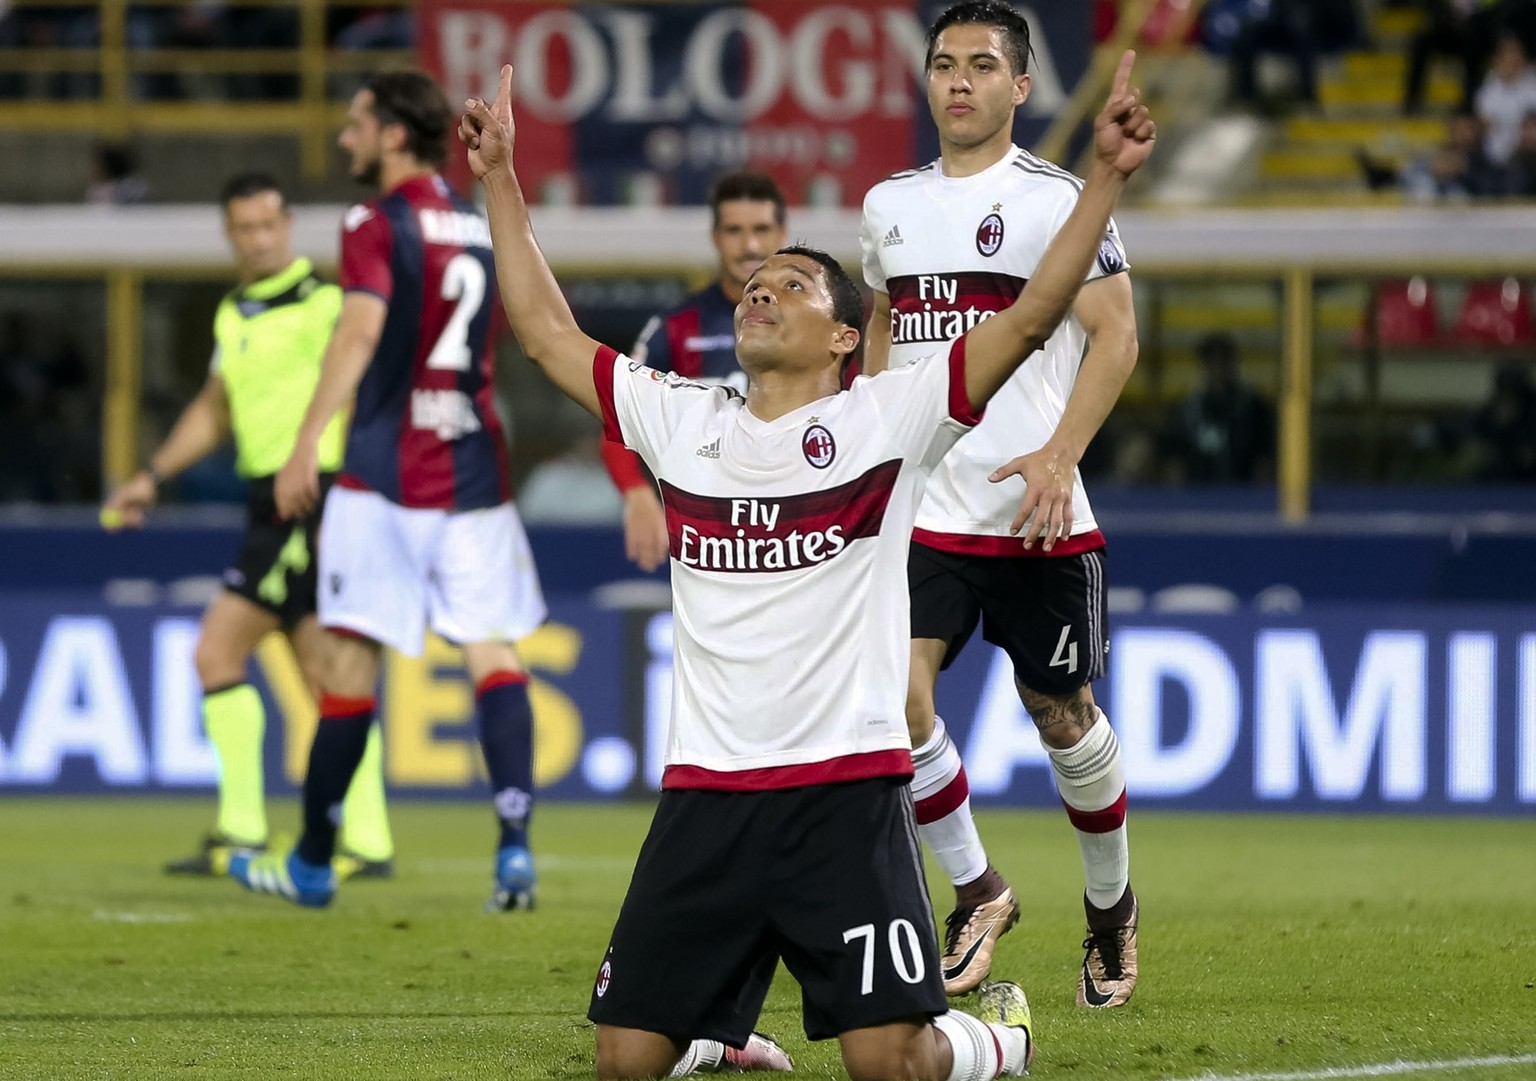 AC Milan's Carlos Bacca of Colombia, followed by teammate Jose Mauri of Argentina, jubilates after scoring on penalty during the Italian Serie A soccer match between Bologna FC and AC Milan at the Dall'Ara stadium in Bologna, Italy, Saturday, May 7, 2016. (Giorgio Benvenuti/ANSA via AP) ITALY OUT